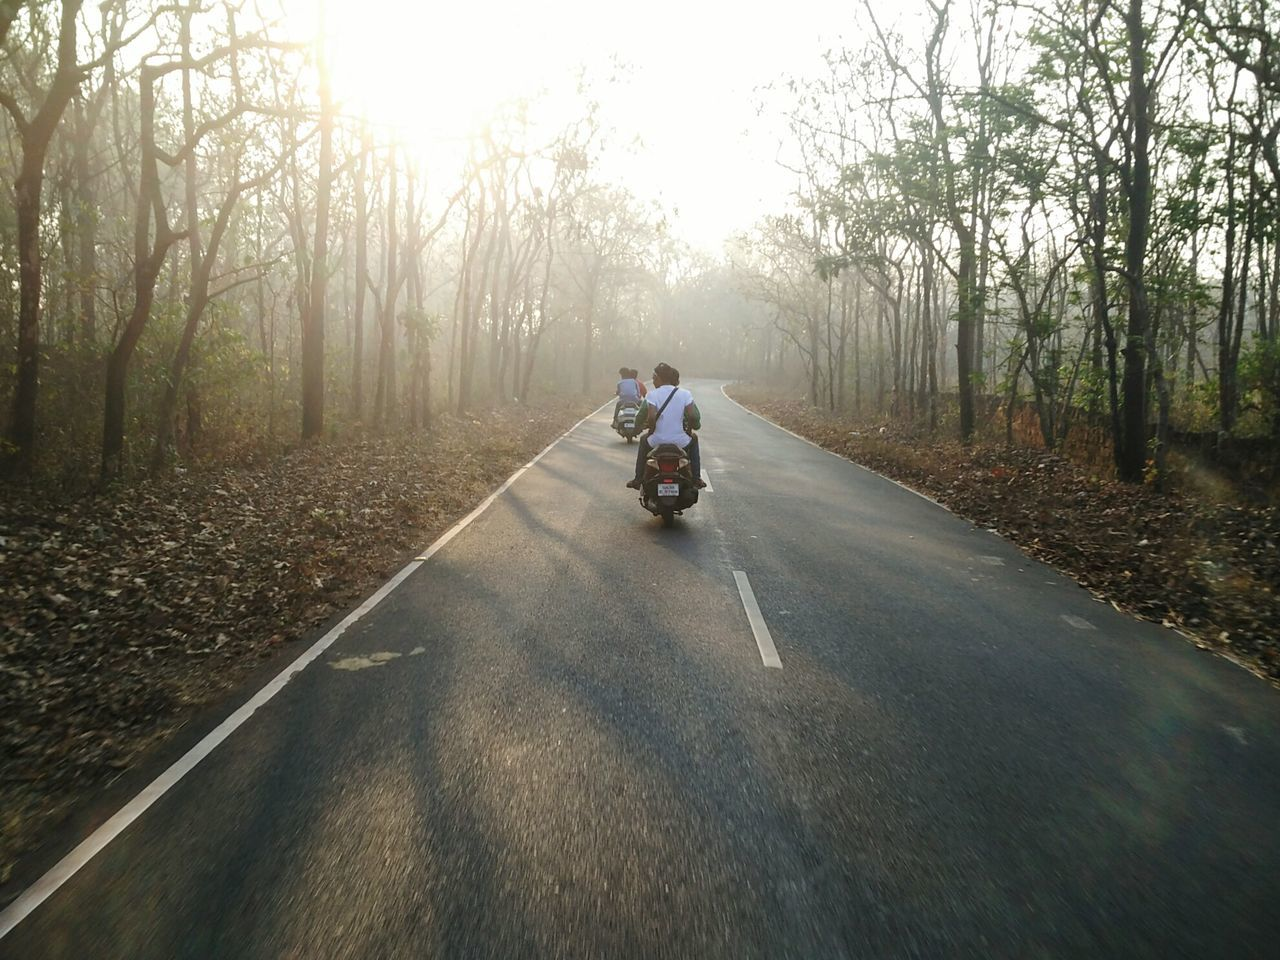 Early morning scooter ride through mist and woods. Early Morning Early Mornings Early Morning Ride Early Morning Mist Early Morning Fog Foggy Morning Misty Morning Morning Woods Trees Placid  Scooter Life Scooter Ride Dawn Winter Goa Goa India Roads Scenery Nature Calm Peaceful And Quiet Serene Travellers Enjoy The New Normal